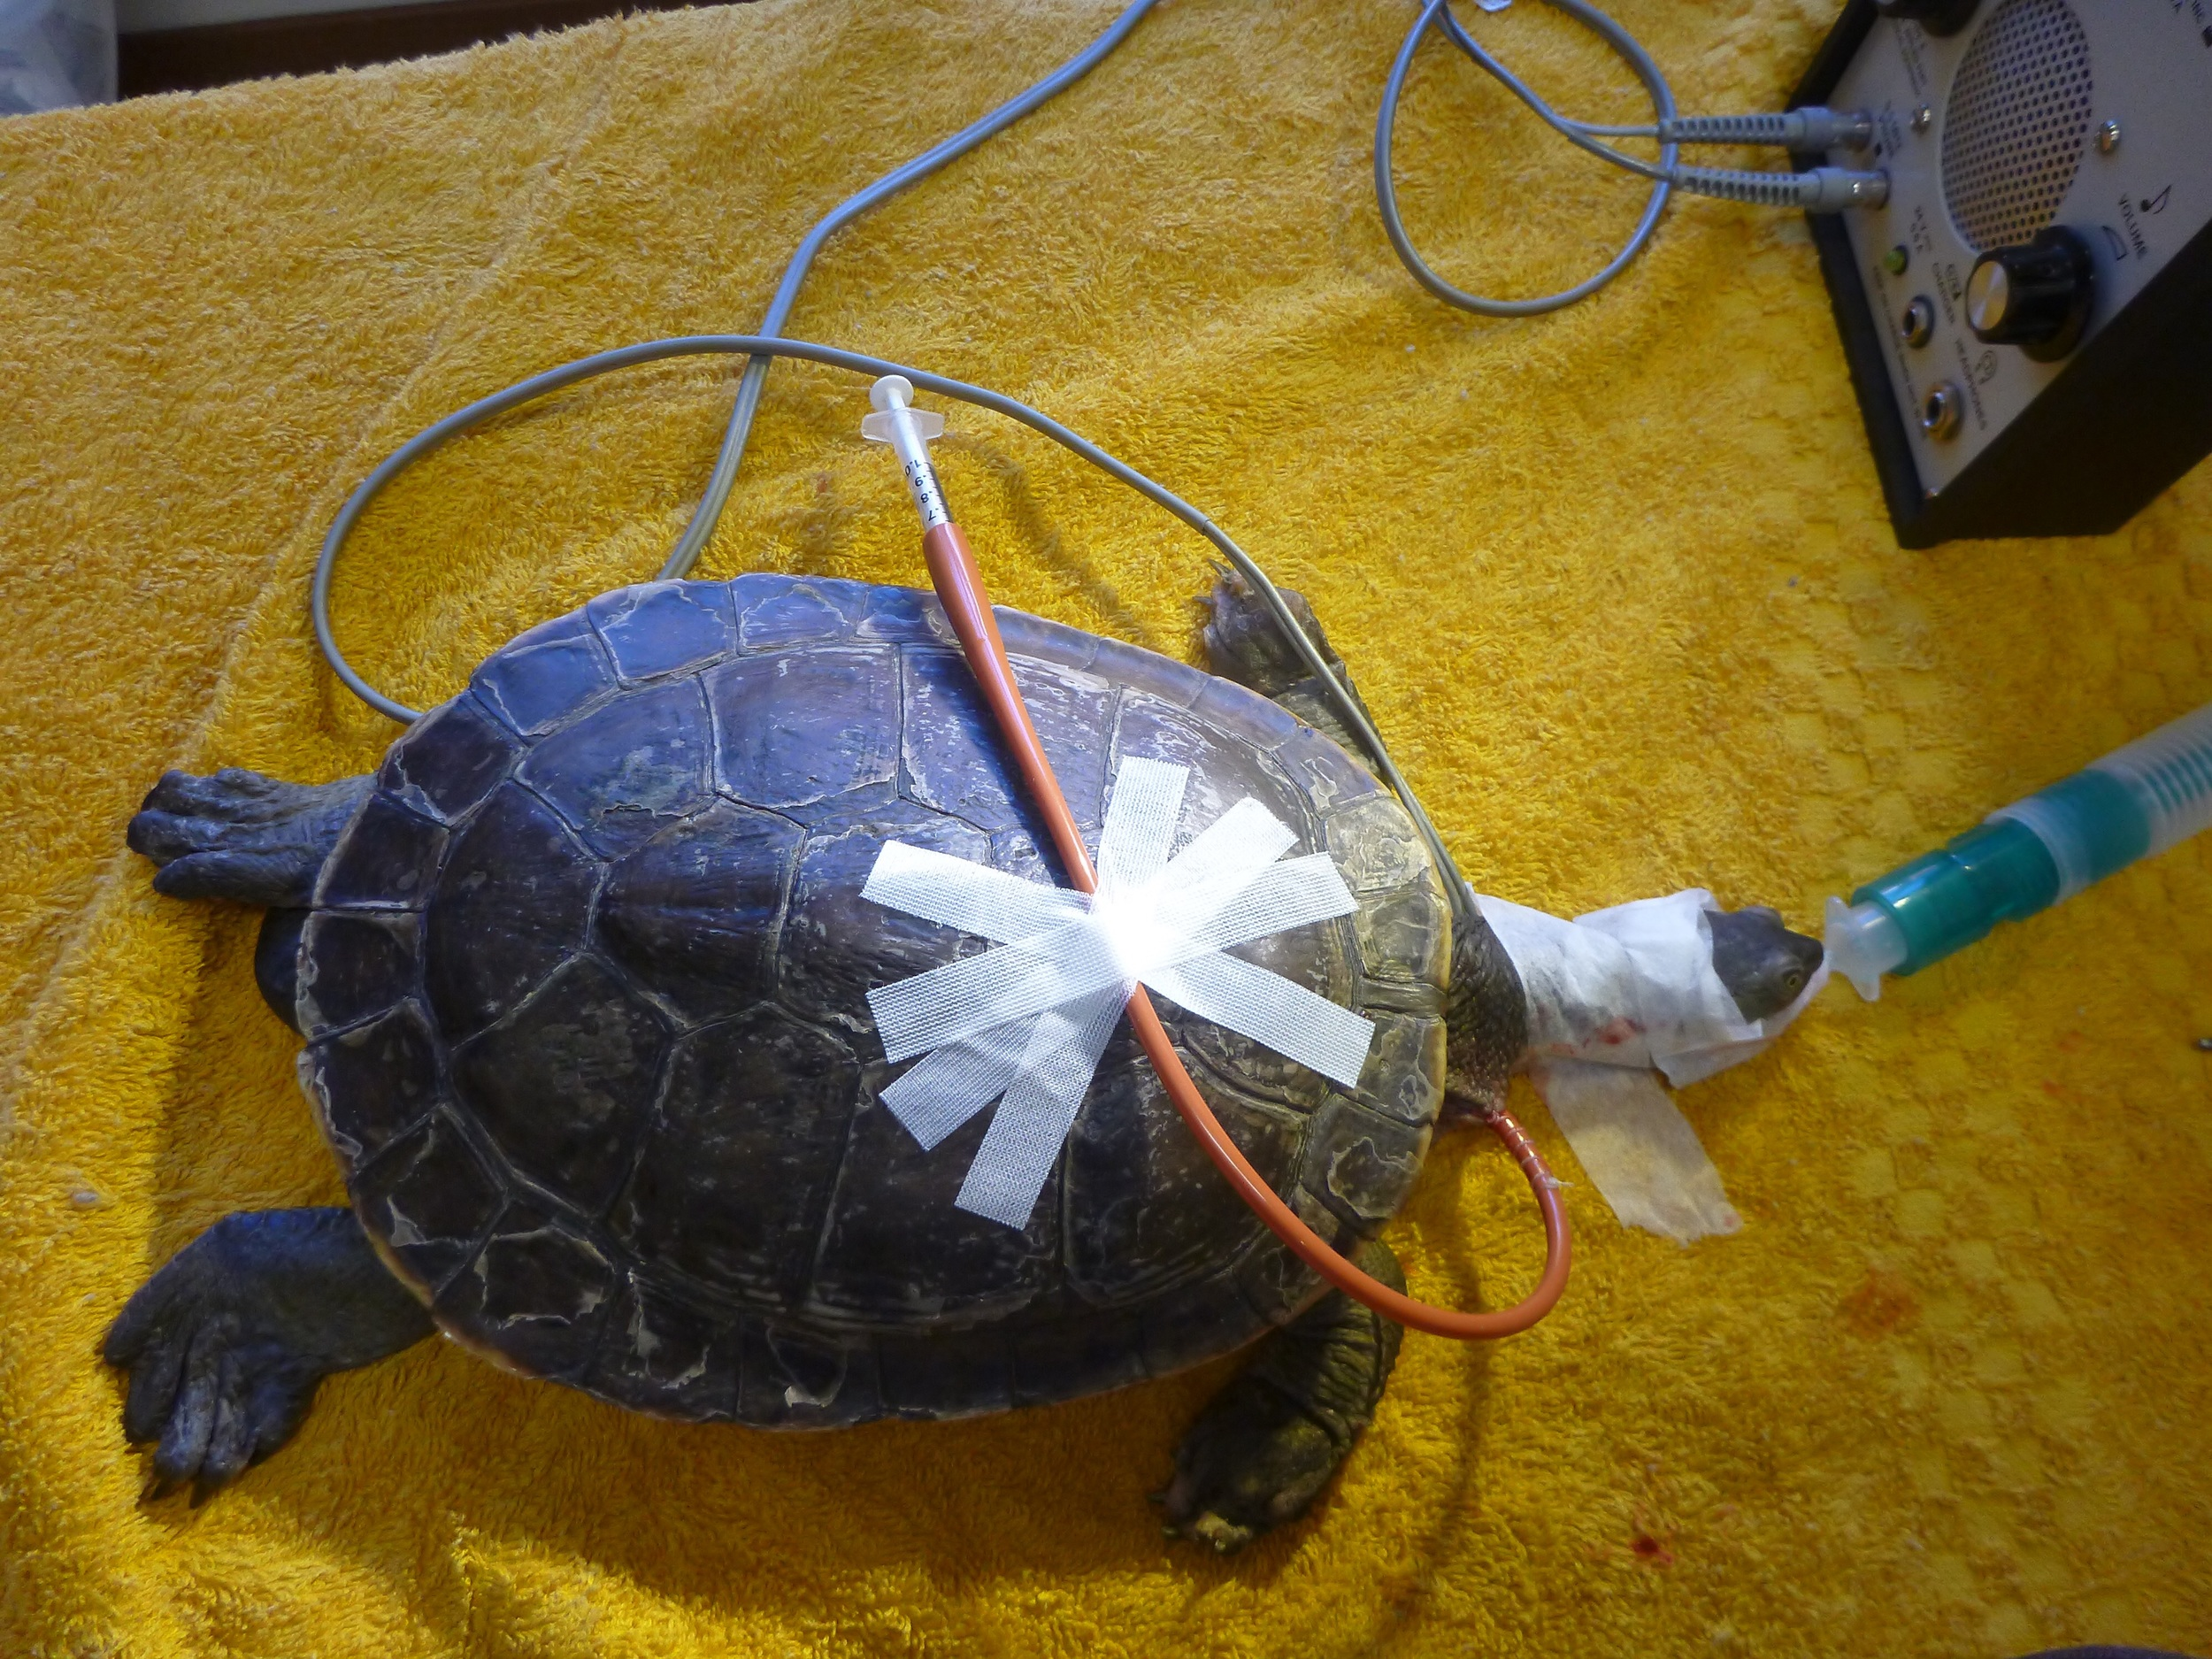 A turtle under anaesthetic after an oesophagostomy tube has been placed.